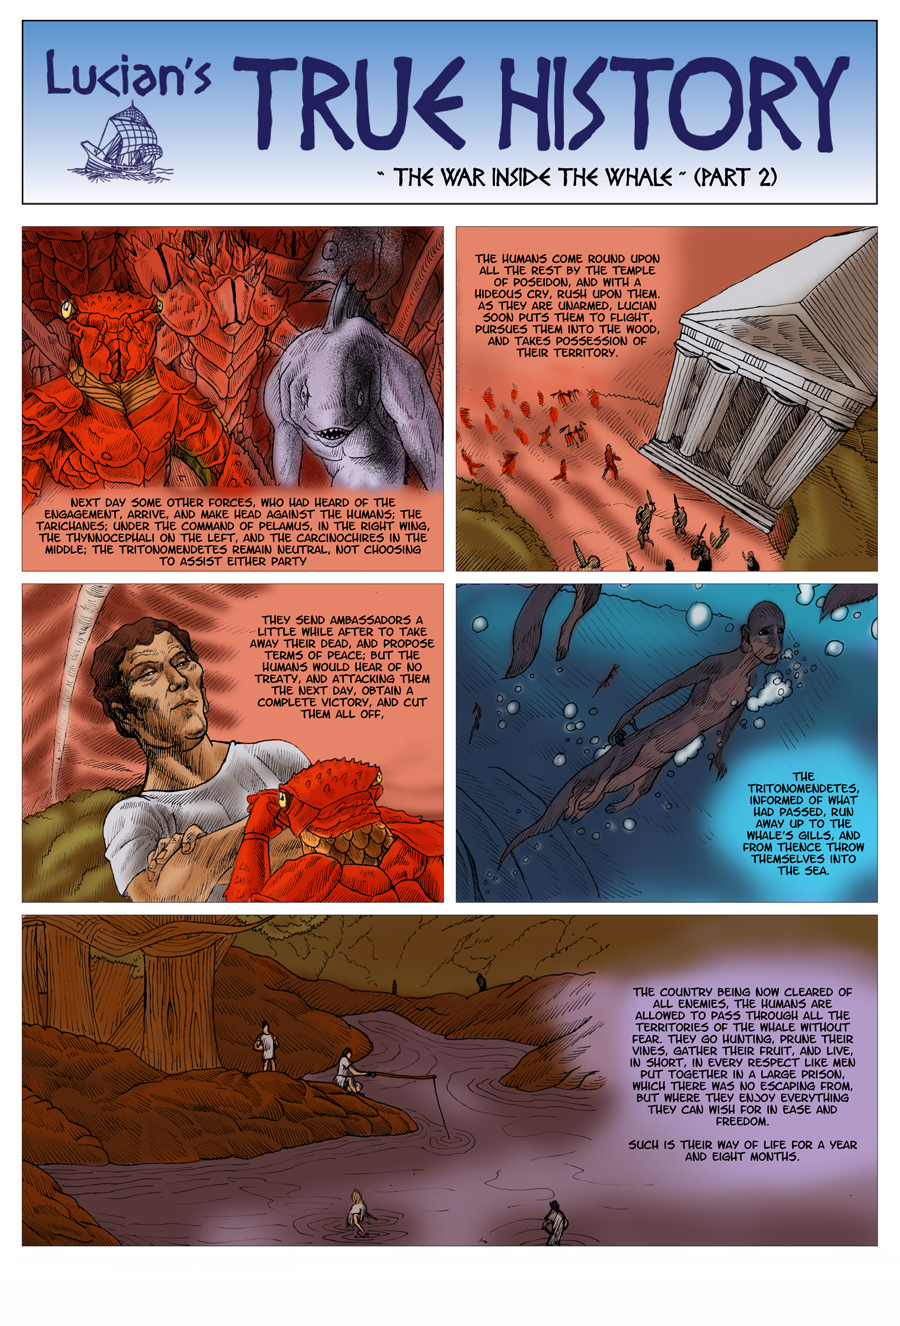 Part 1: Page 18